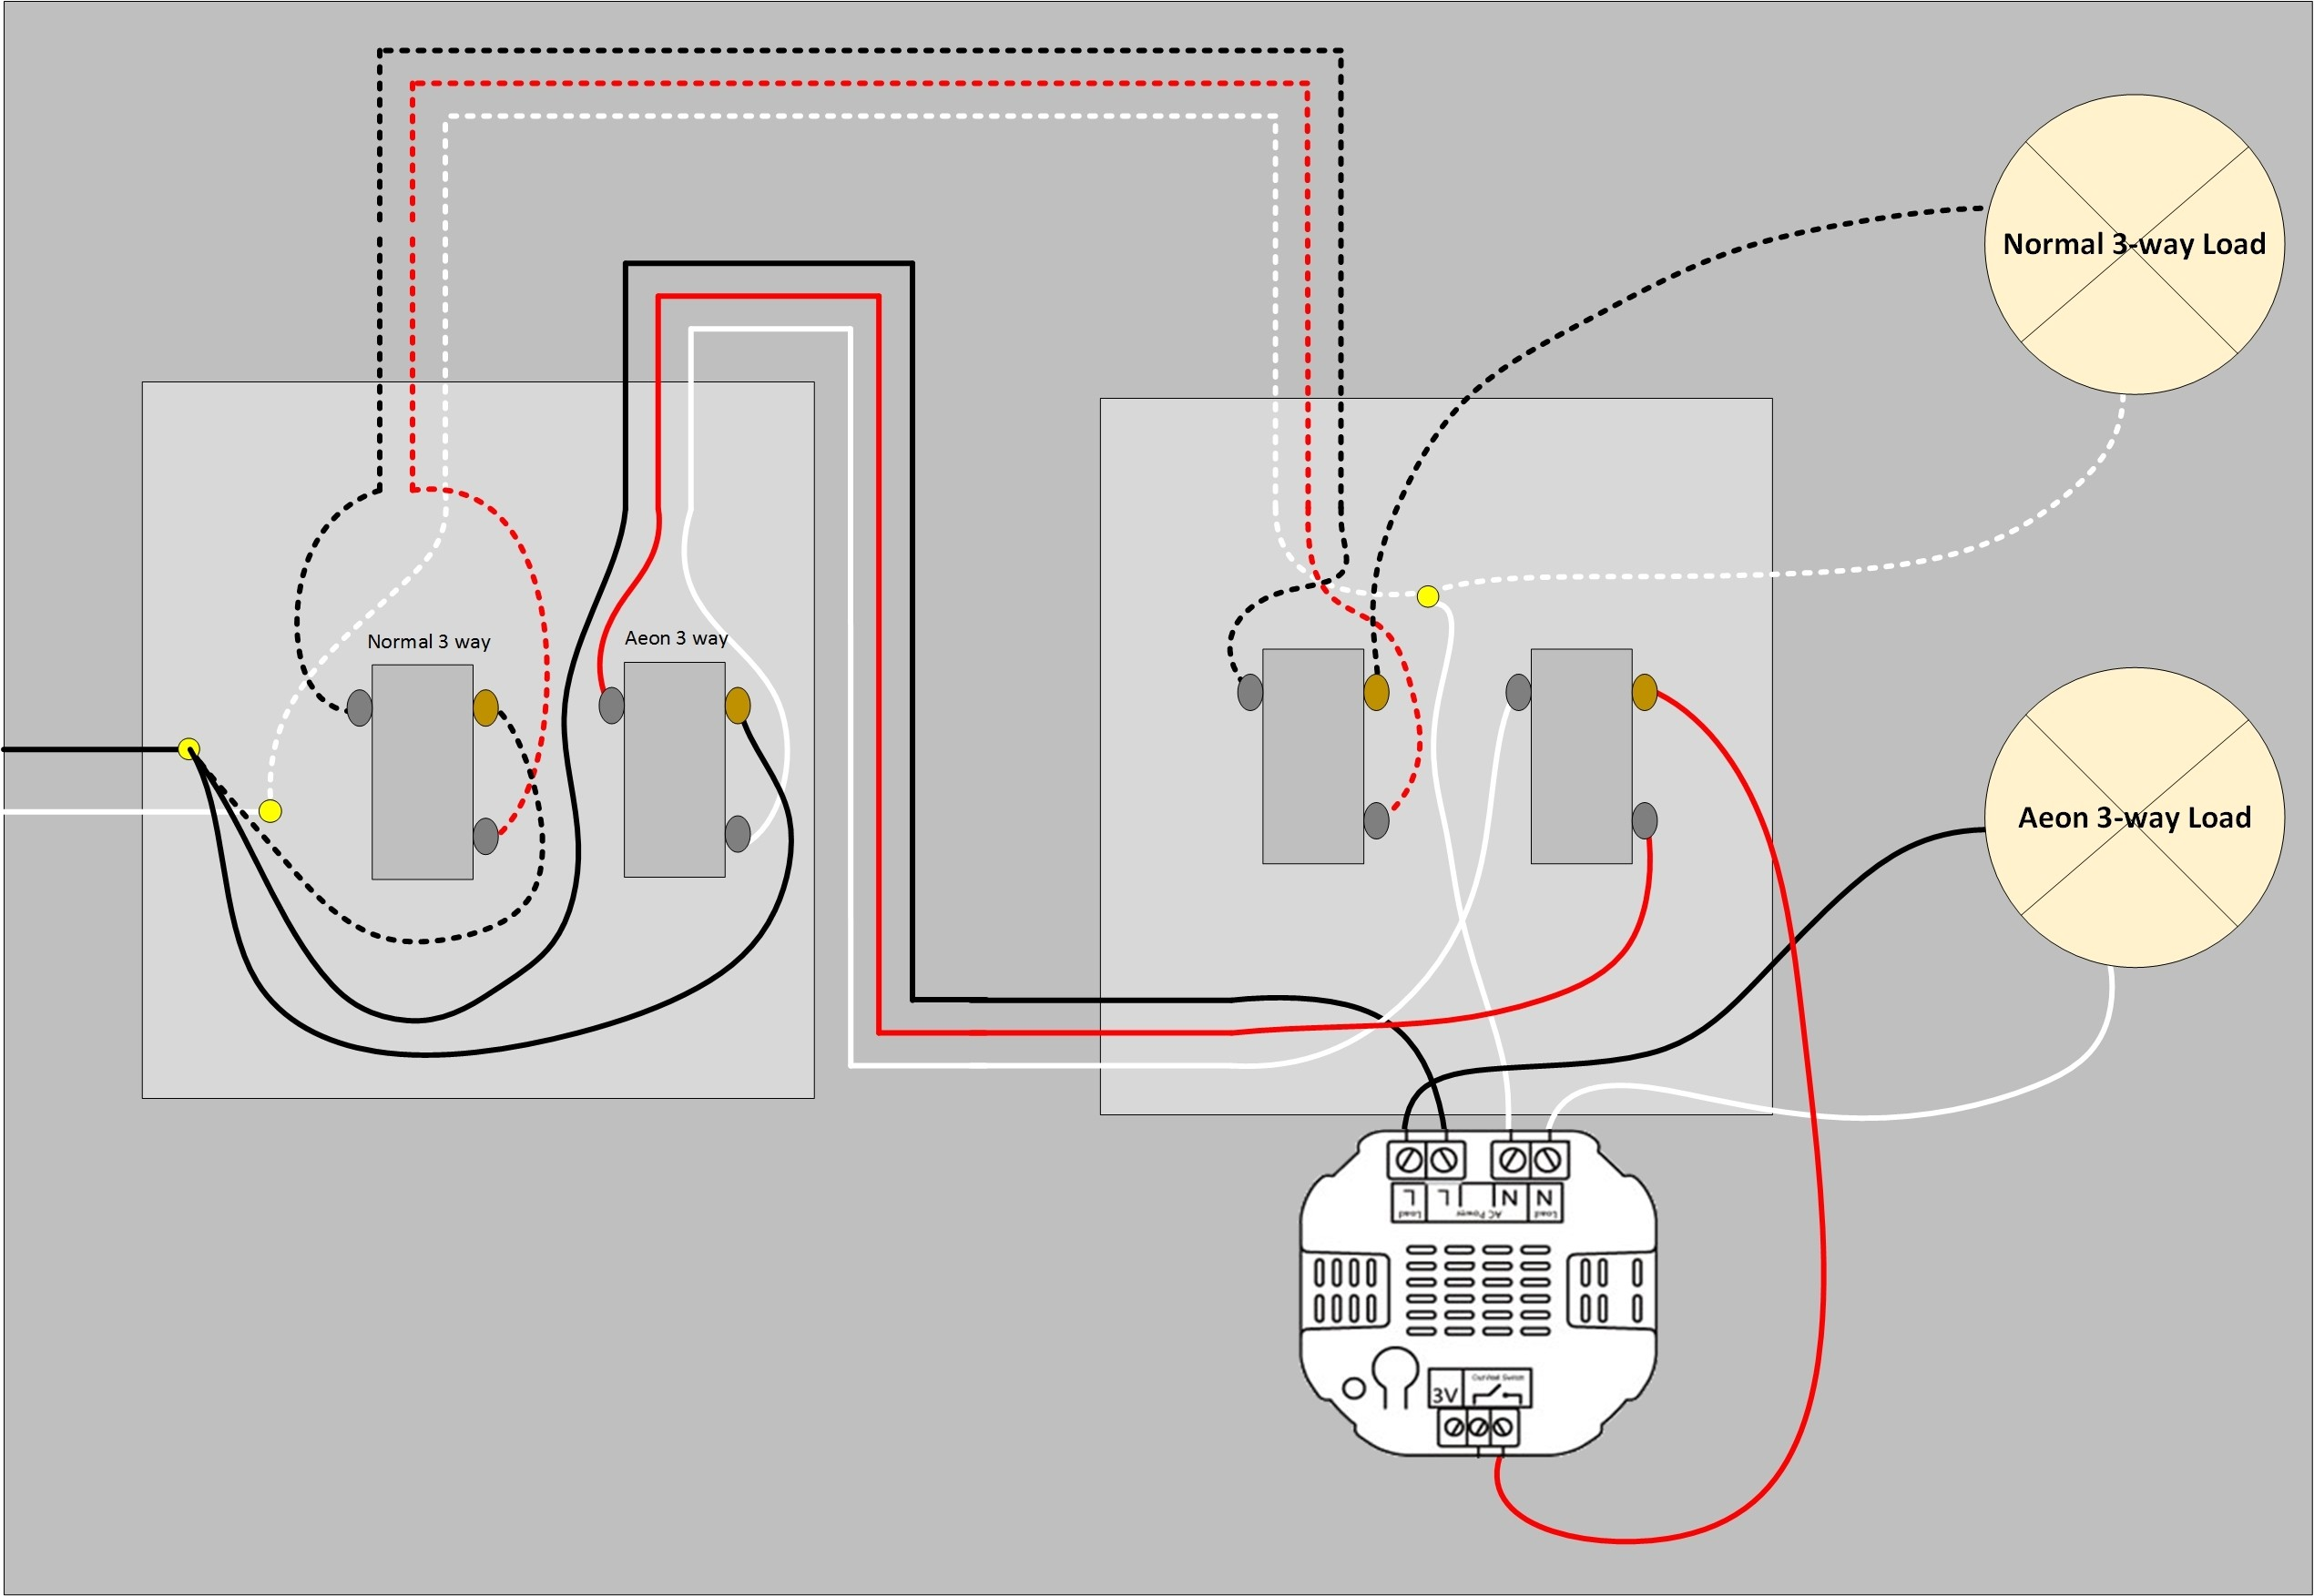 [DIAGRAM_5LK]  329 Leviton 3 Way Switch Wiring Diagram Decora 5641 | Wiring Library | Leviton Wiring Diagram 3 Way Switch No 5603 |  | Wiring Library